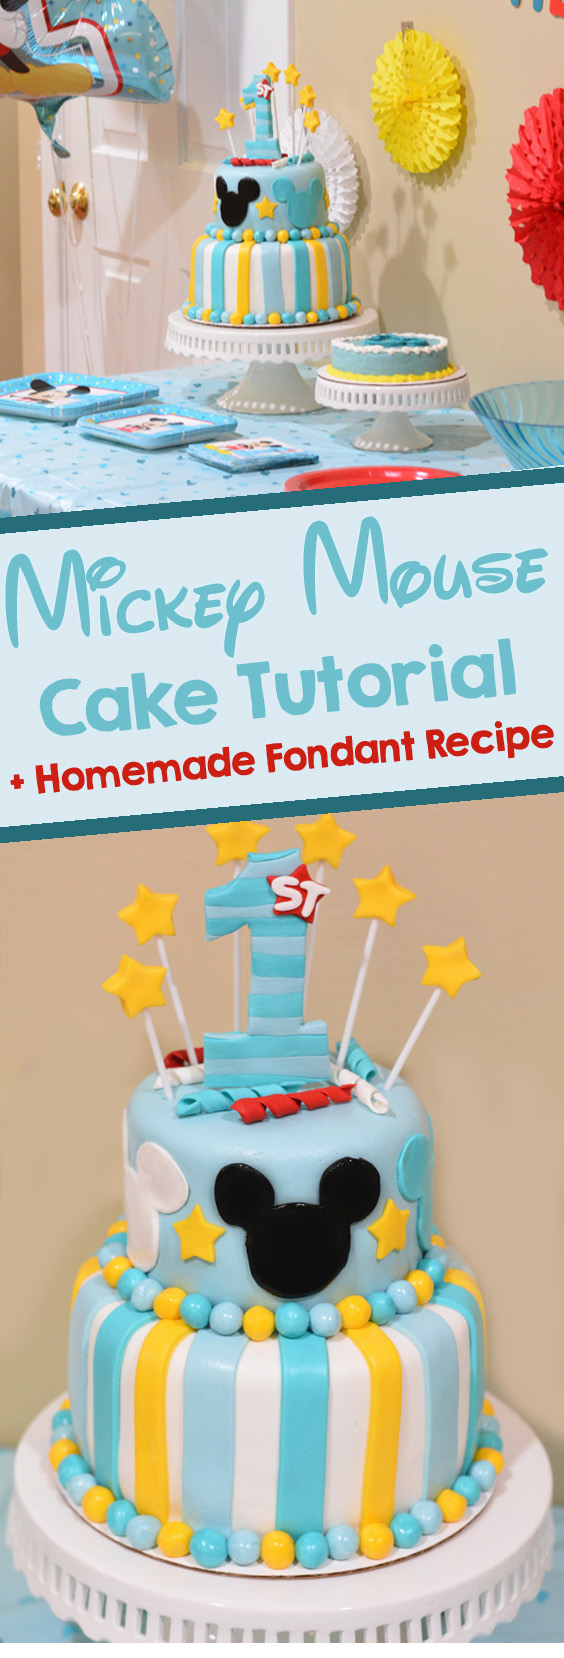 How to make a Mickey Cake Tutorial